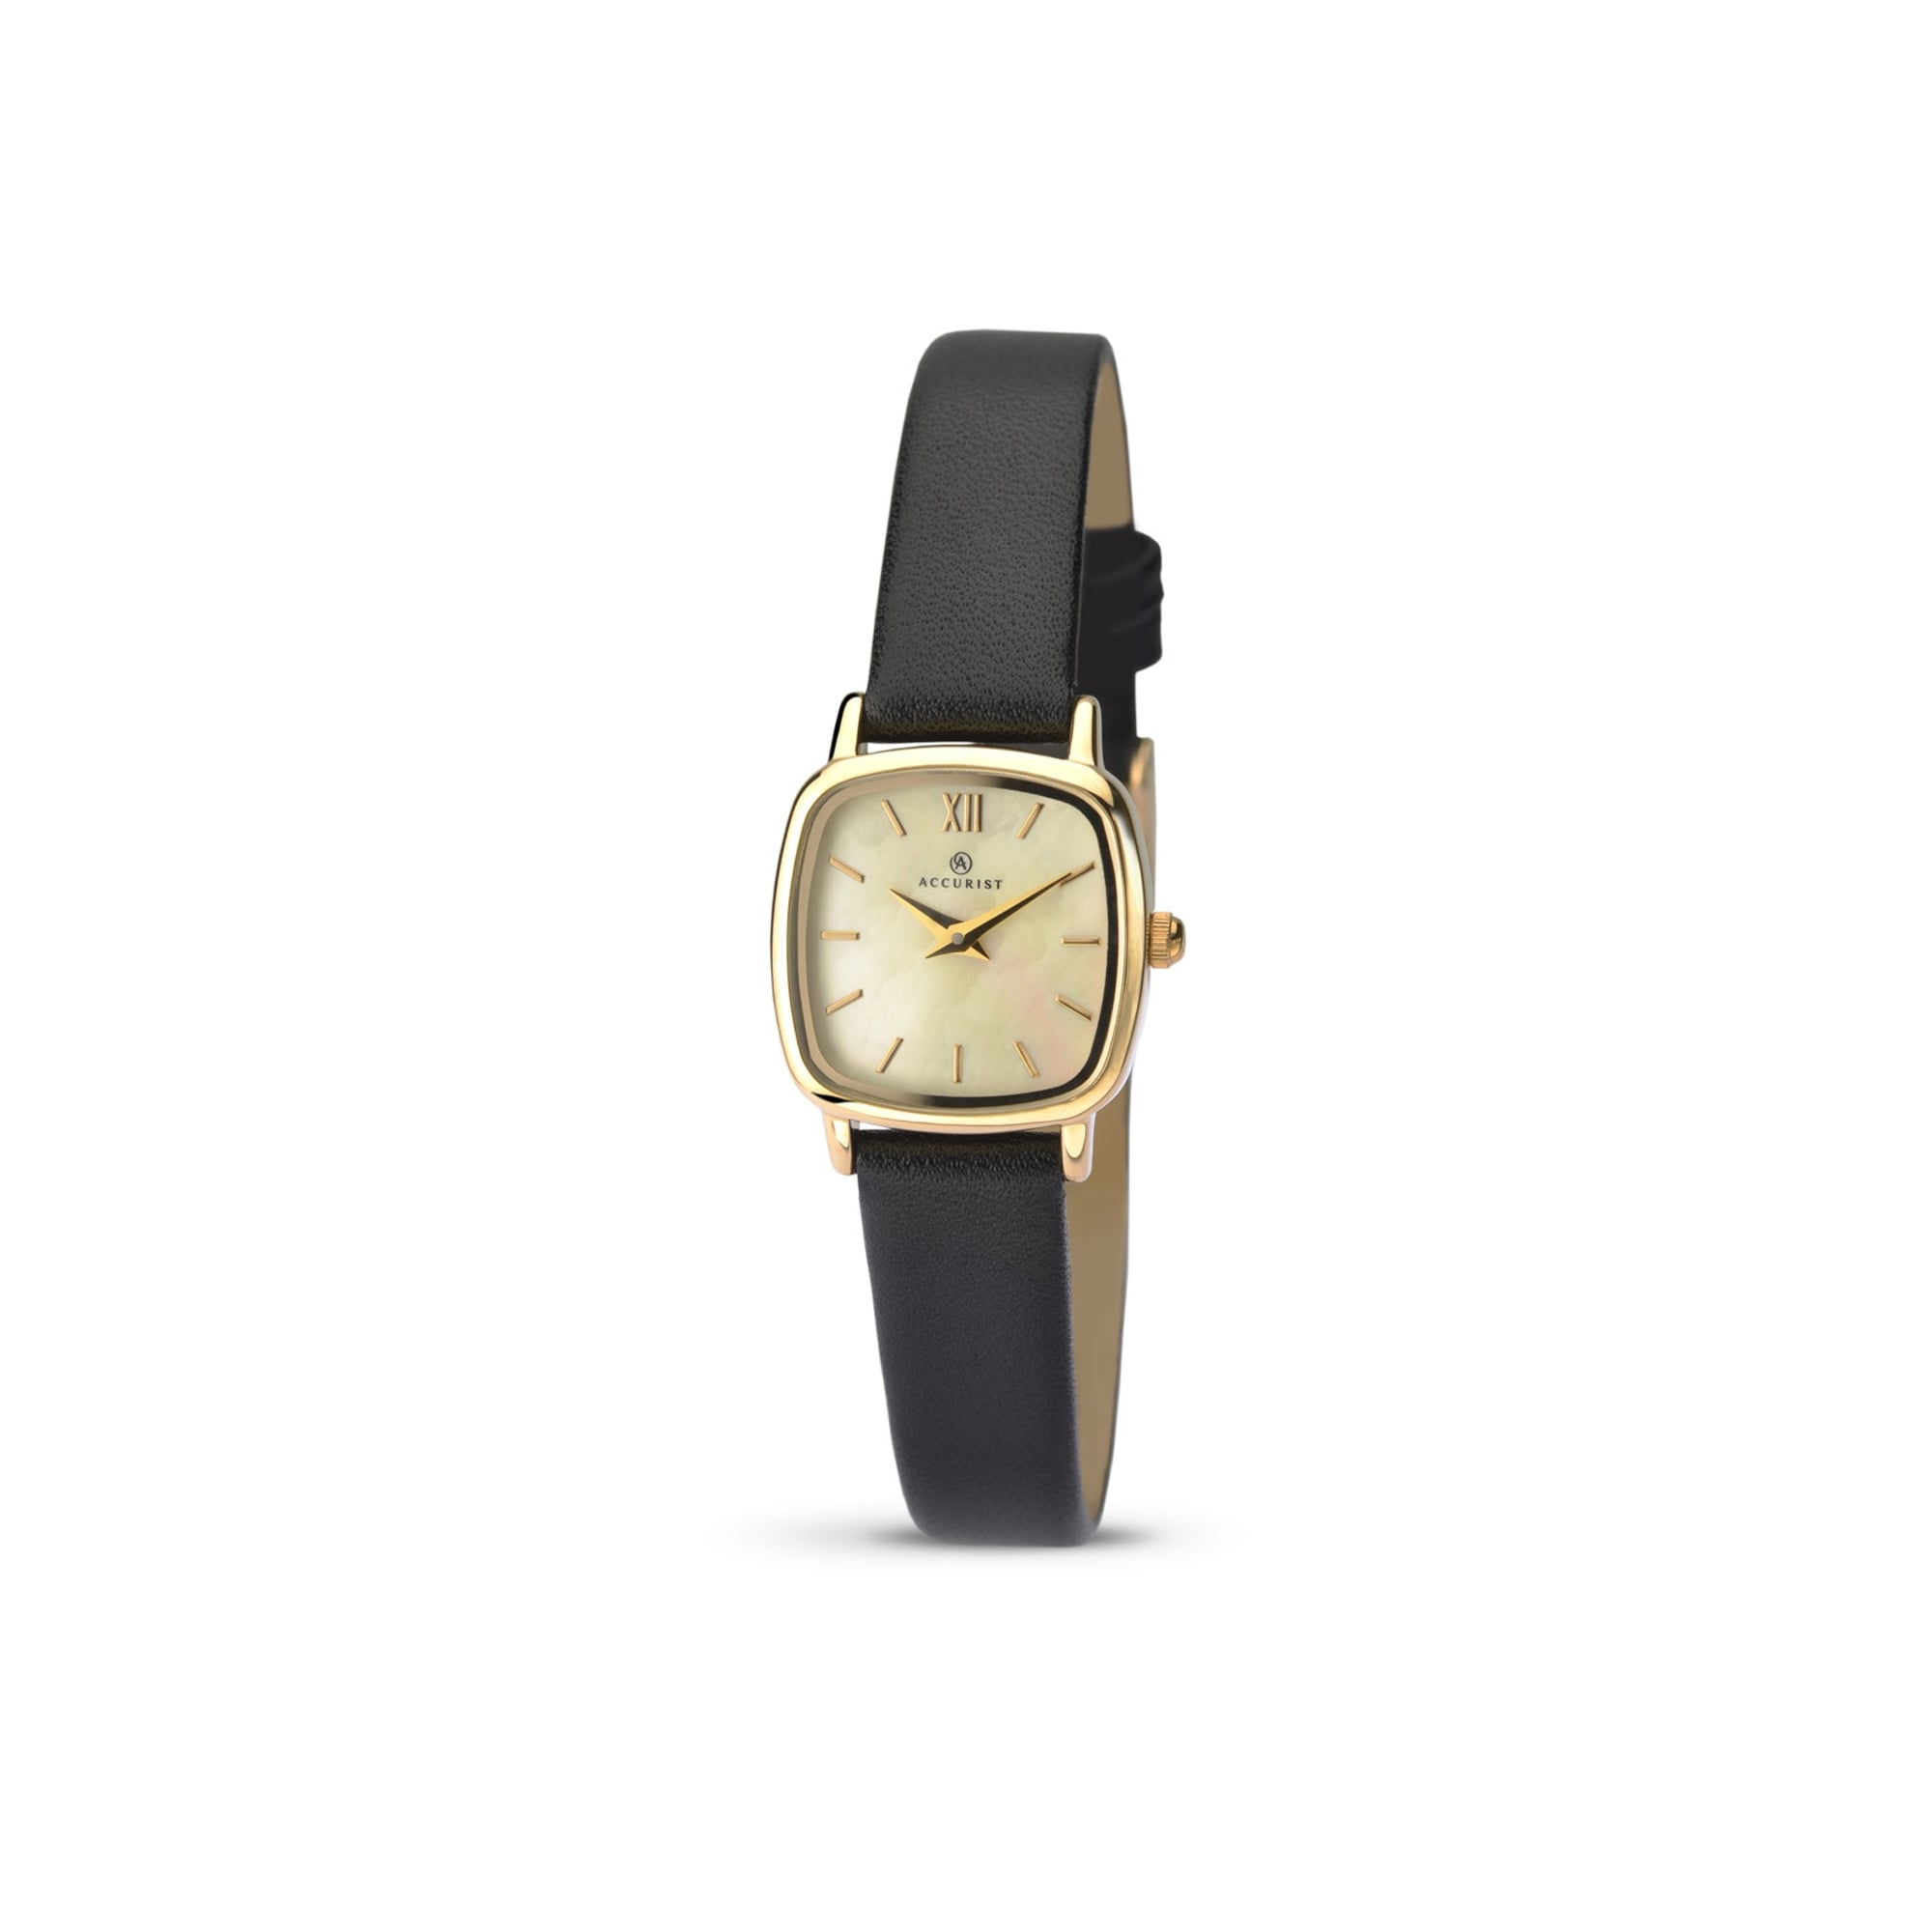 b3c50e452 Accurist Watches Womens Accurist Gold Plated Square Face Watch on Leather  Strap 8101